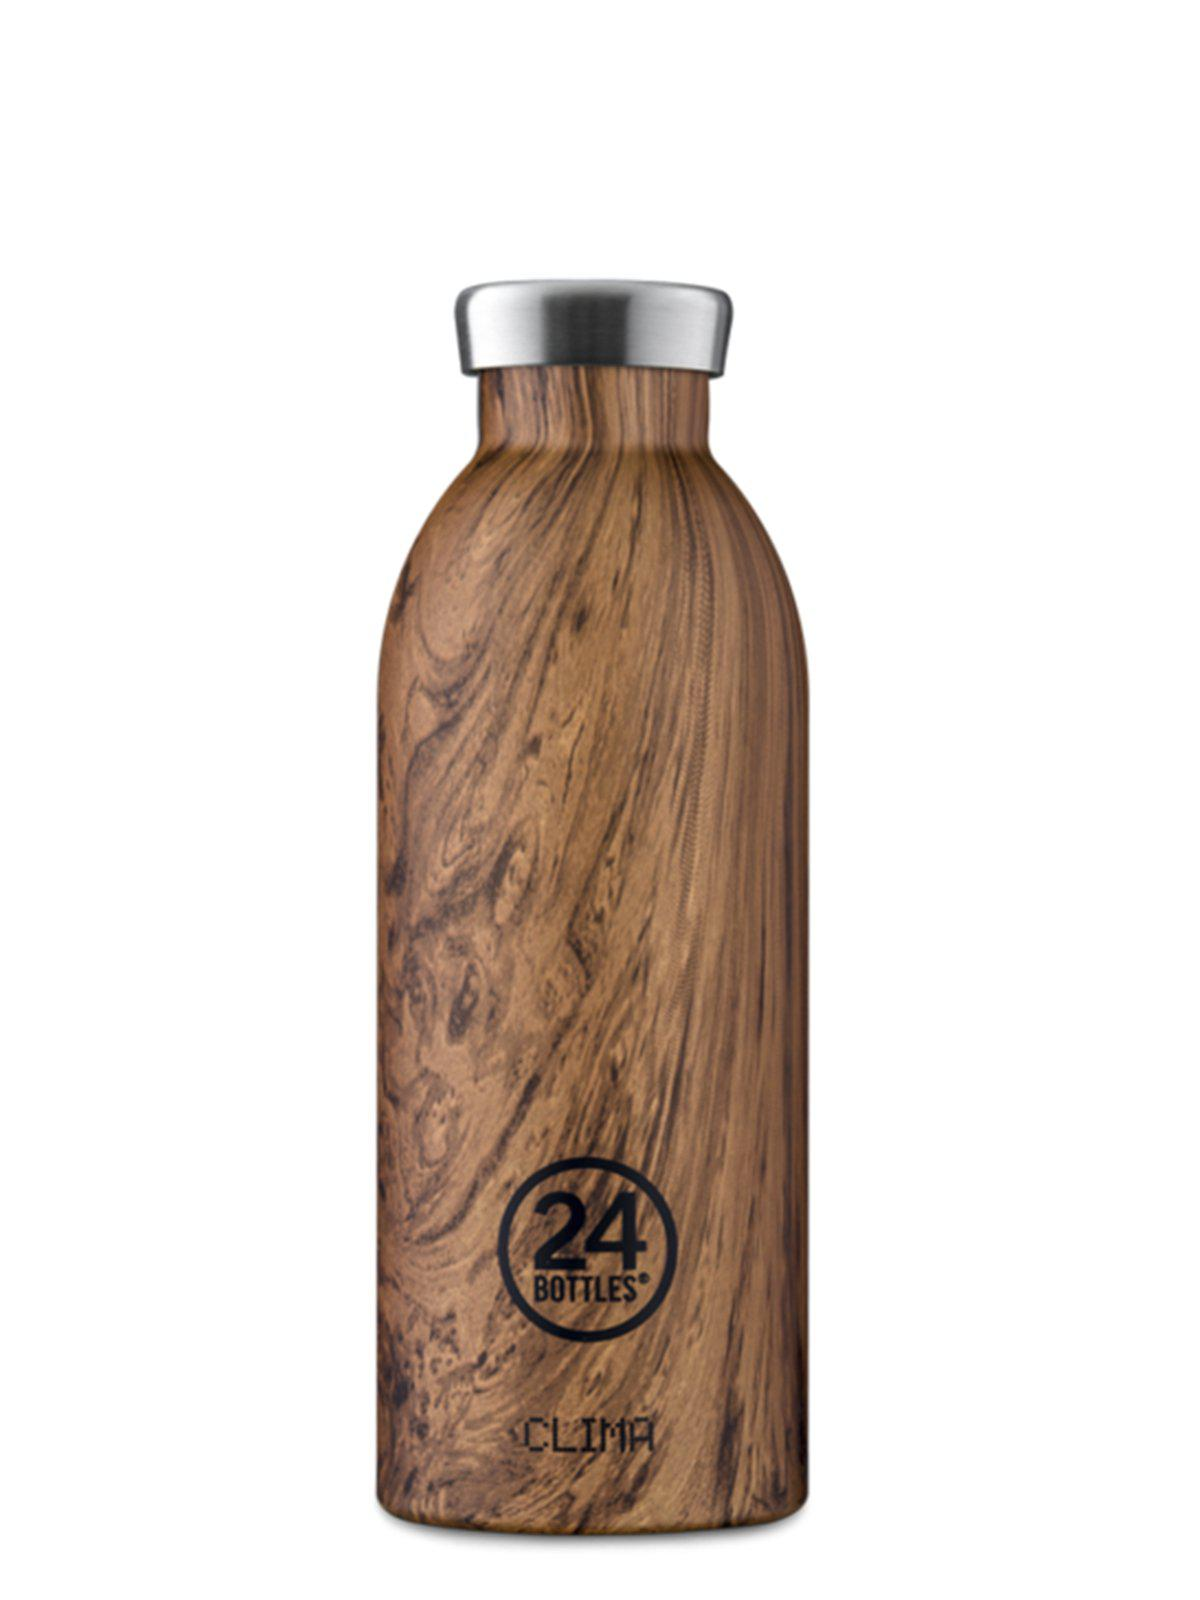 24Bottles Clima Bottle Sequoia Wood 500ml - MORE by Morello Indonesia